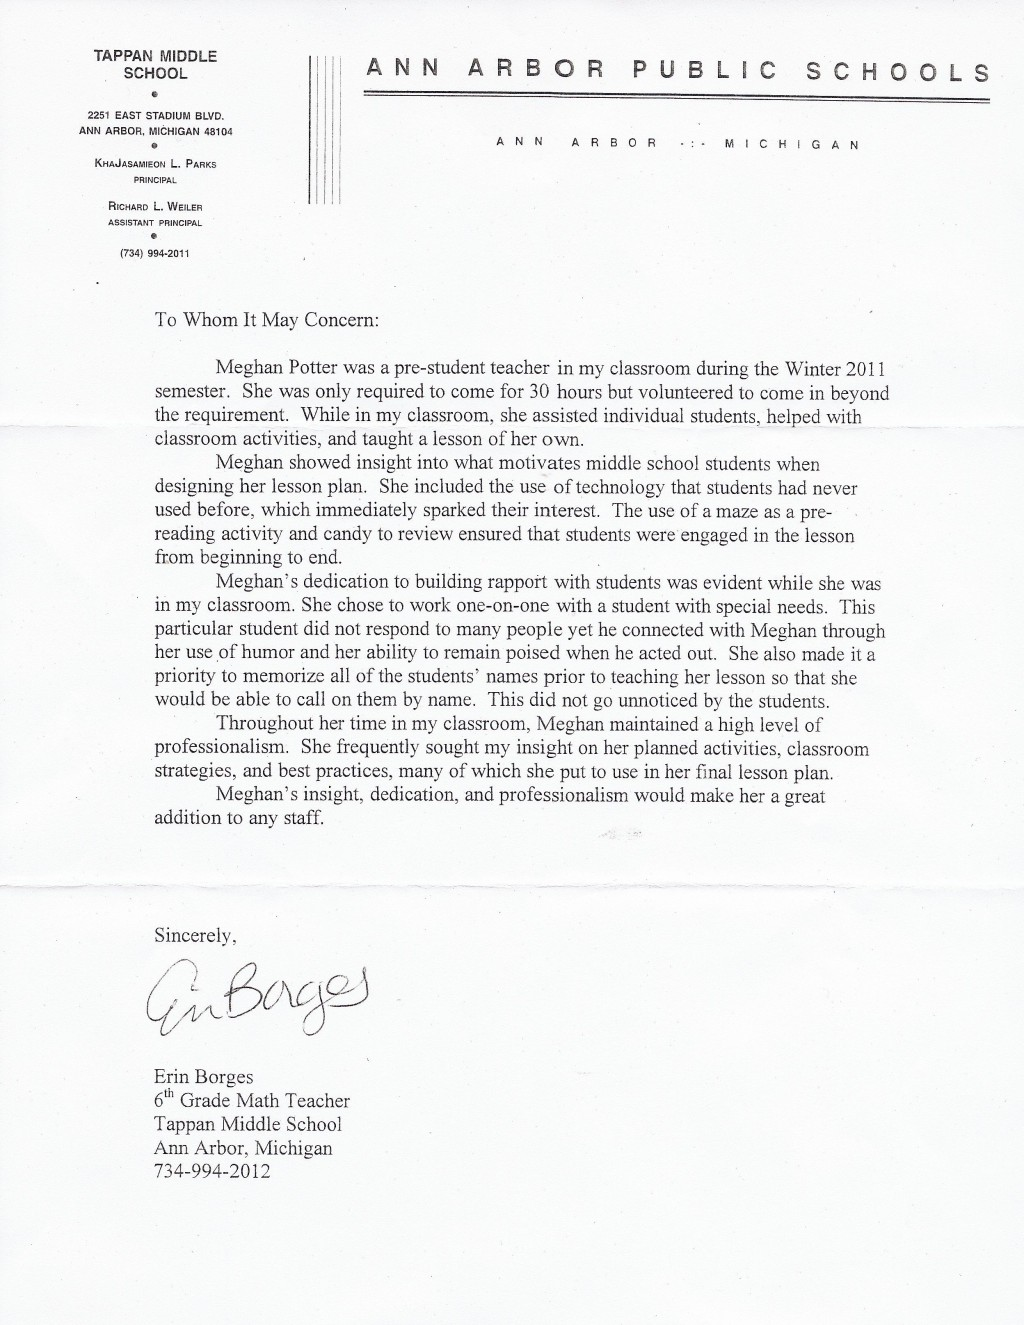 008 Incredible Letter Of Recommendation For Student Teacher From Cooperating Template Inspiration Large